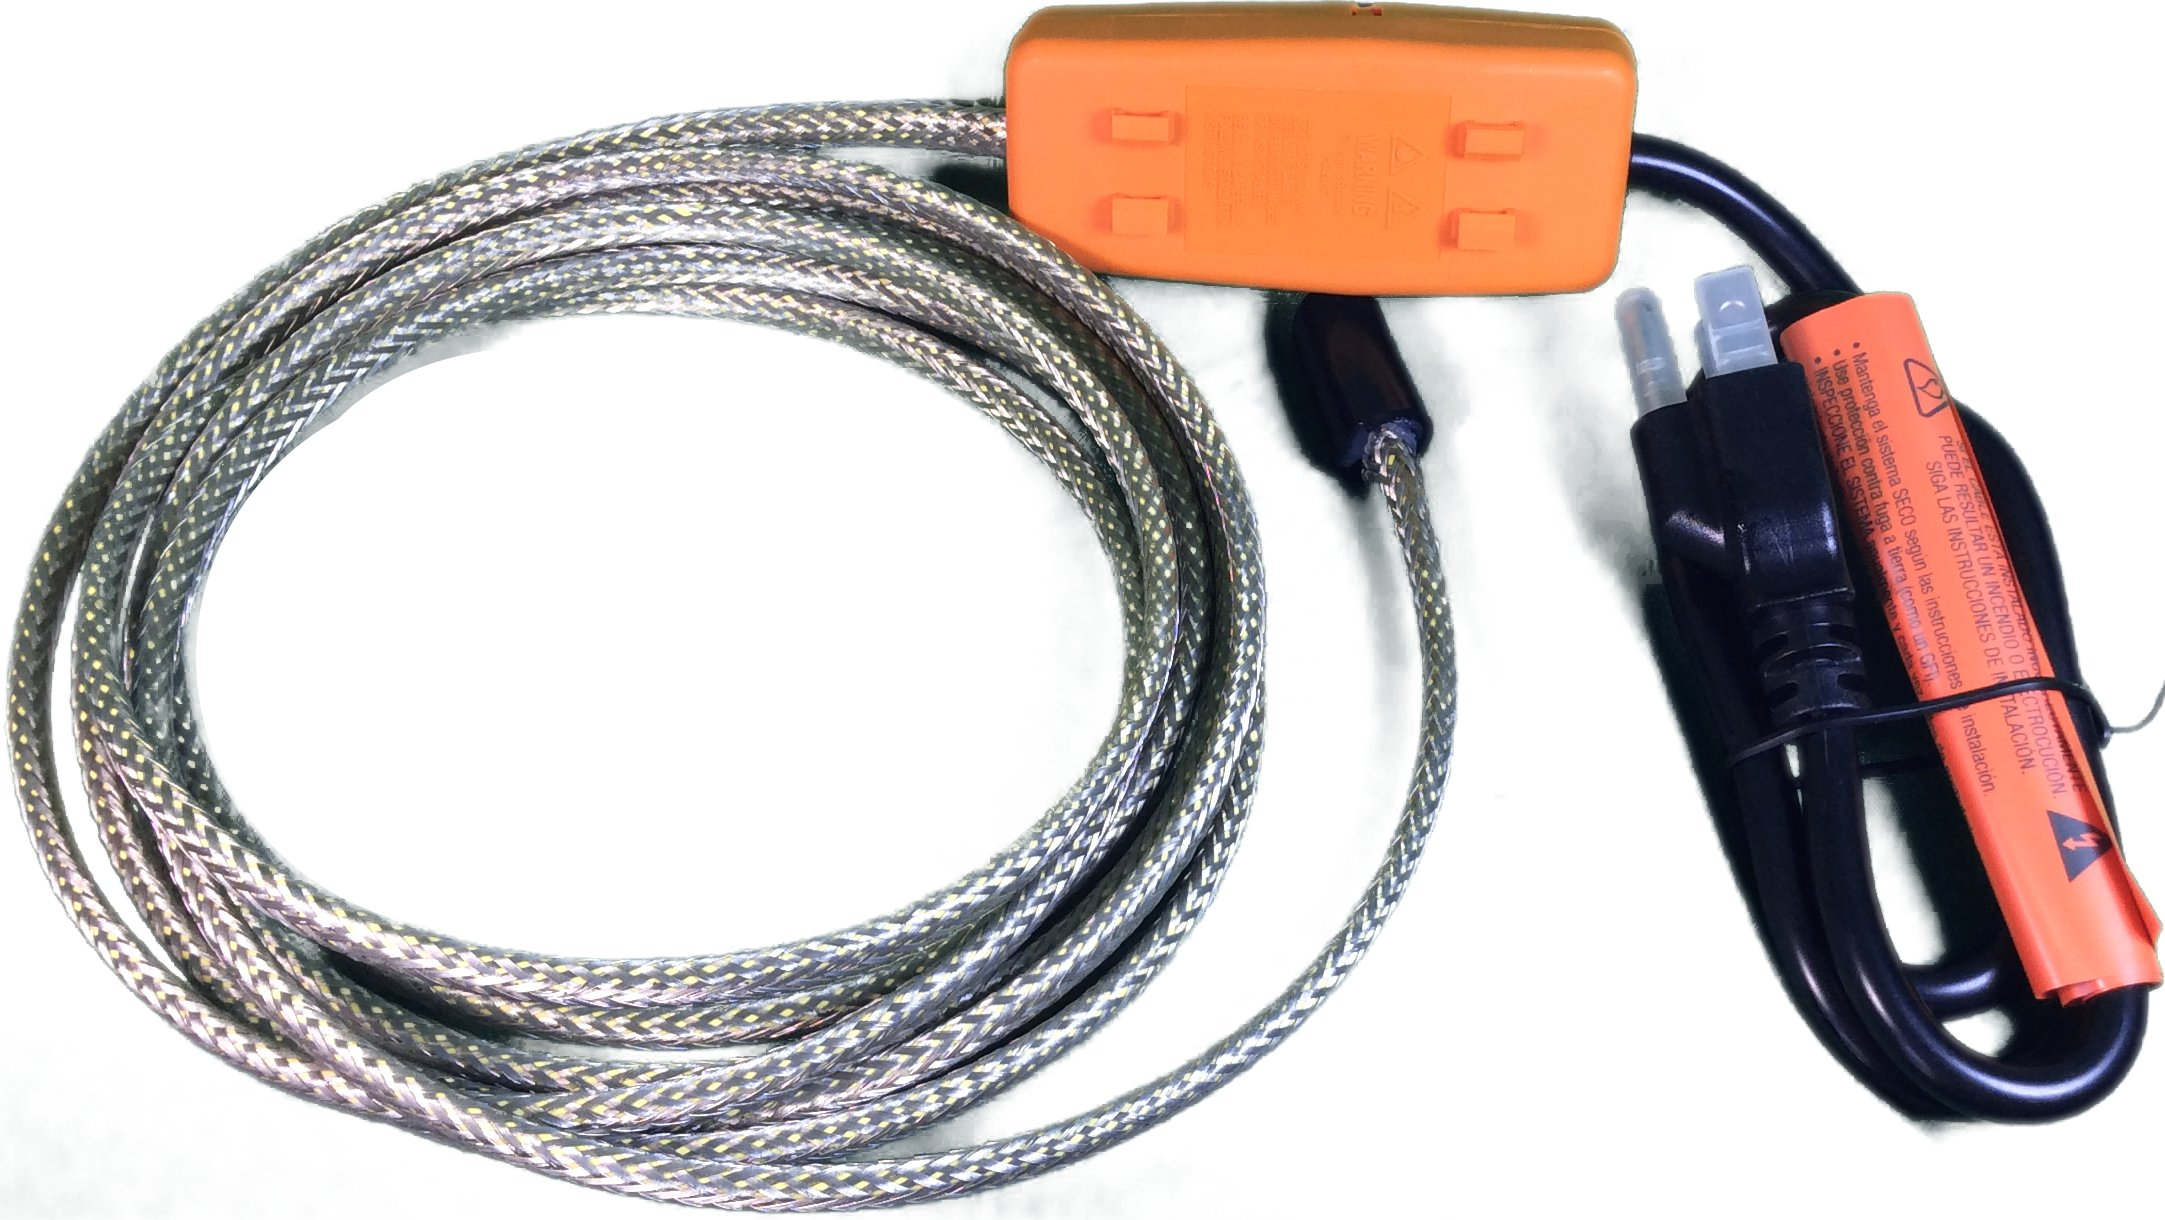 Heat Tape Easy Heat Freeze Protection Cable Waterline Heater Pre-cut to 50 Foot includes Installed Plug Head by Easy Heat